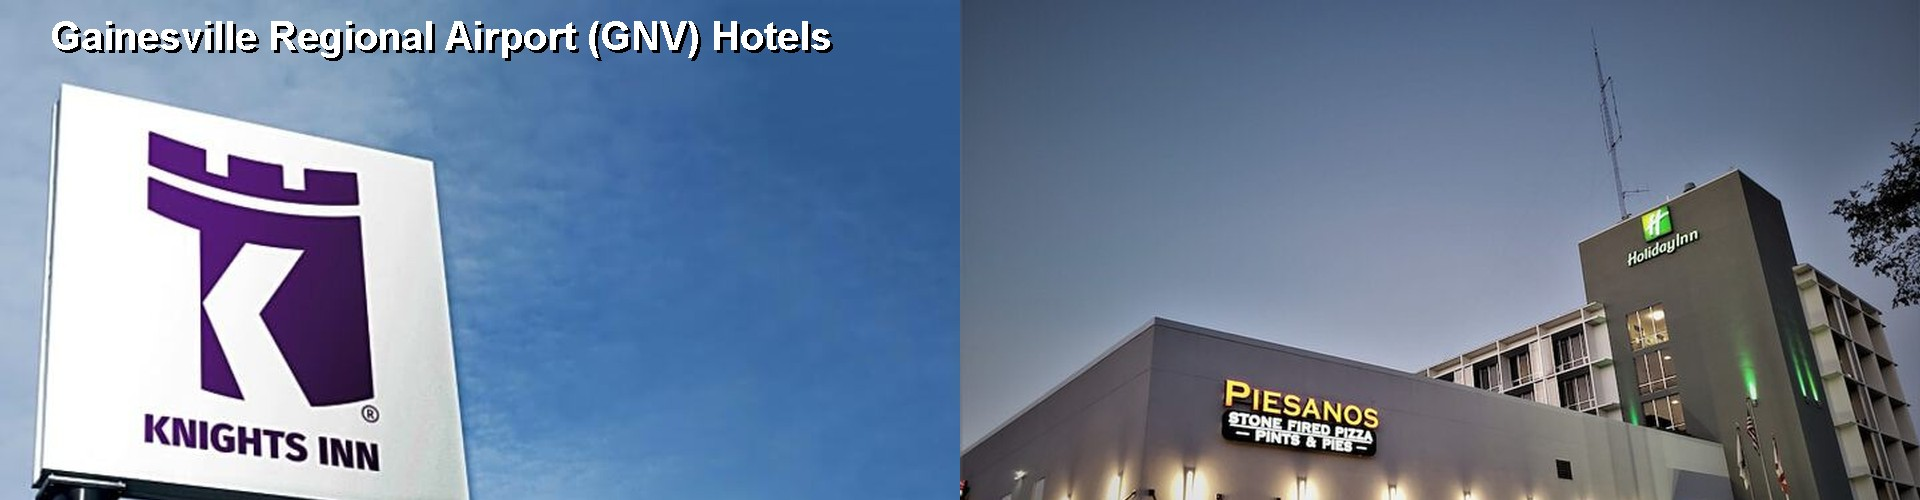 5 Best Hotels near Gainesville Regional Airport (GNV)